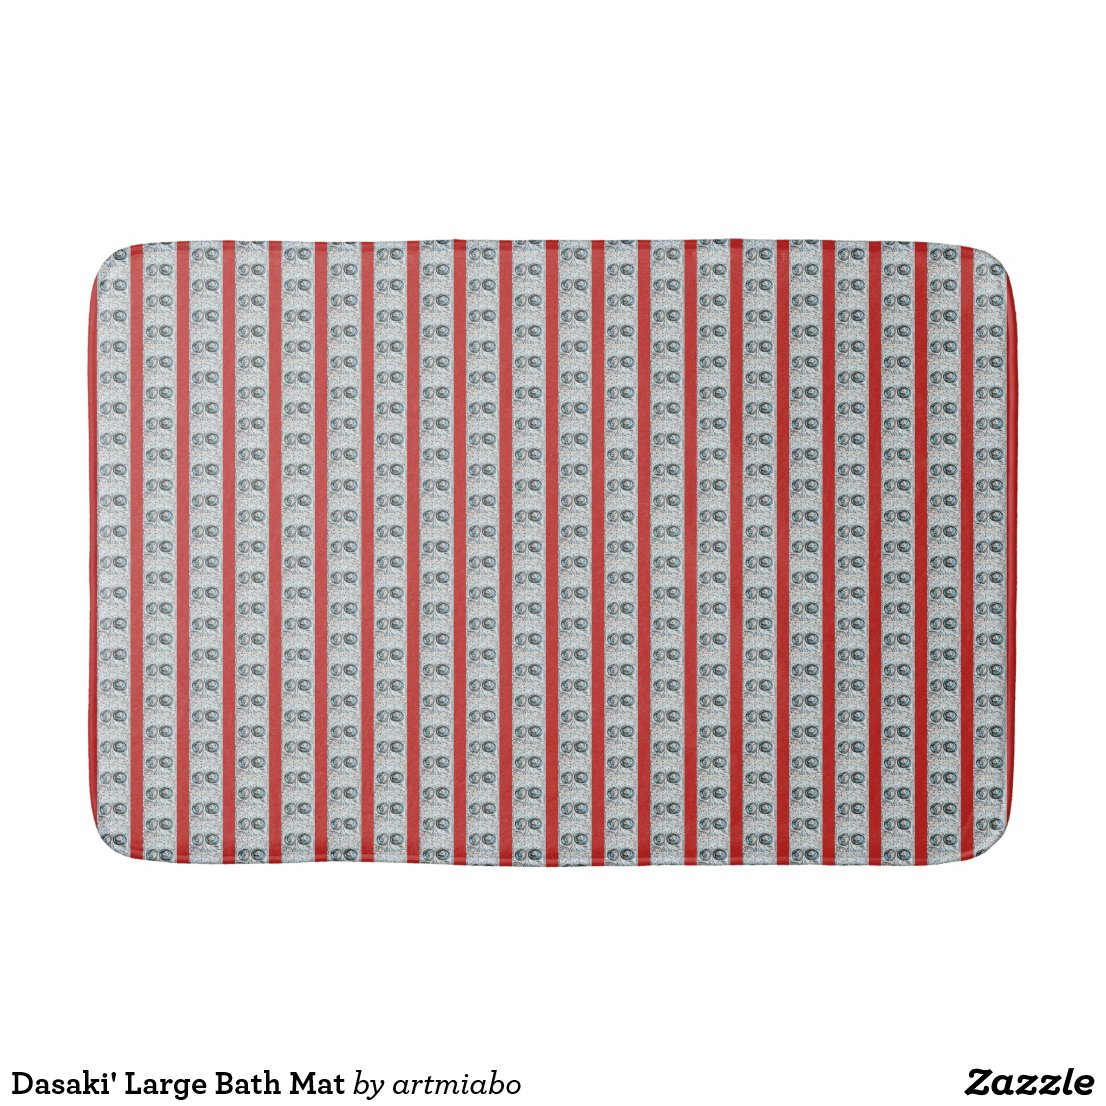 Dasaki' Large Bath Mat